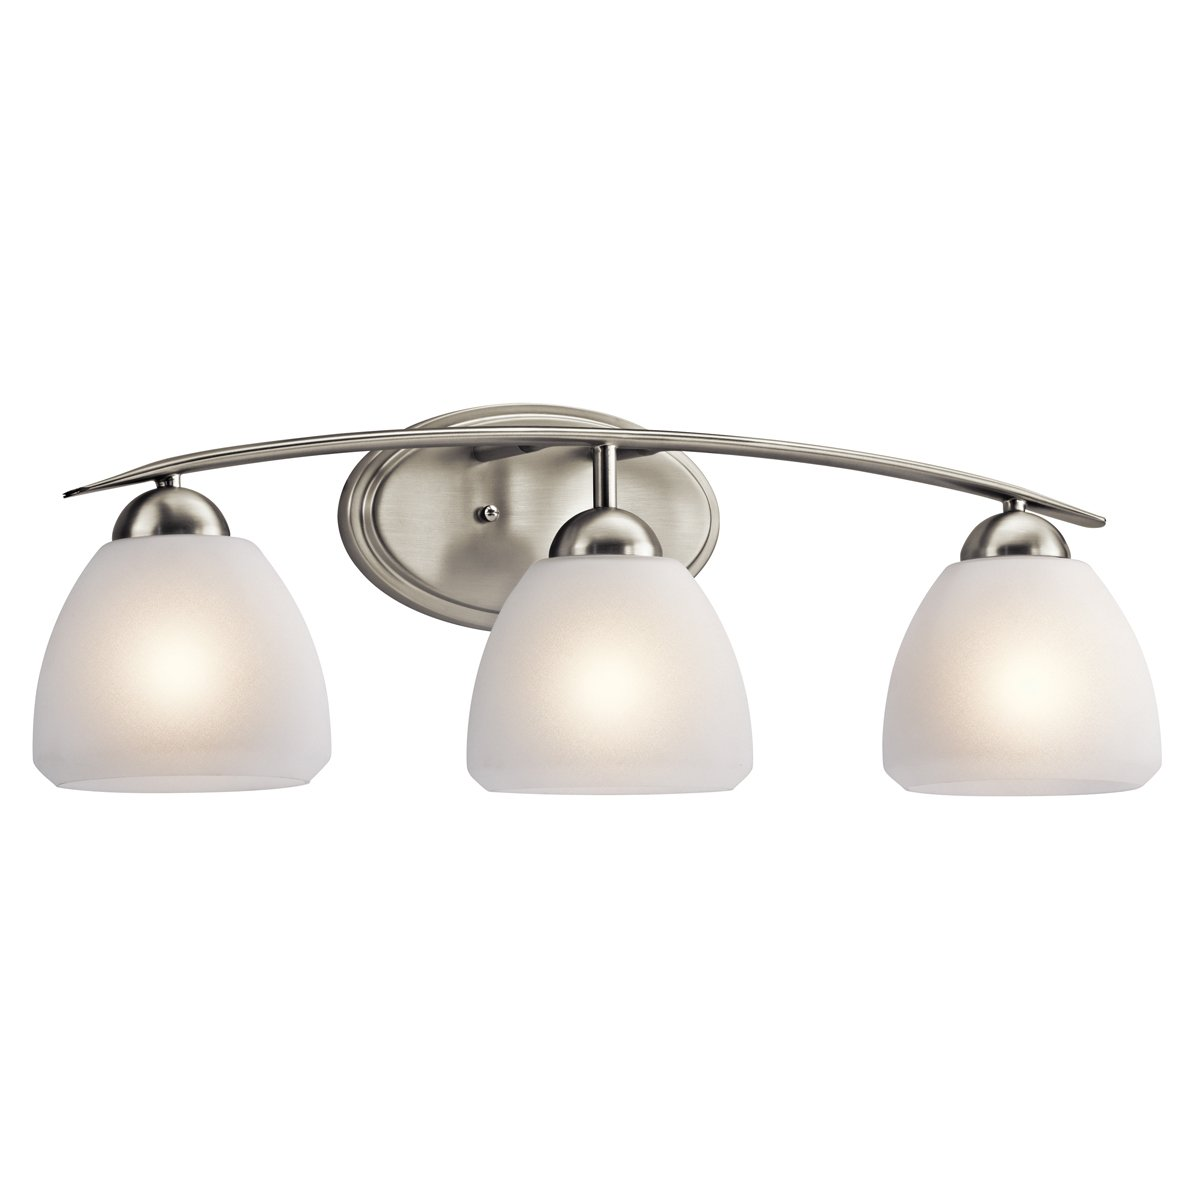 Charming Kichler Lighting 45119NI Calleigh 3LT Vanity Fixture, Brushed Nickel Finish  With Satin Etched Cased Opal Glass   Bathroom Light Fixtures   Amazon.com